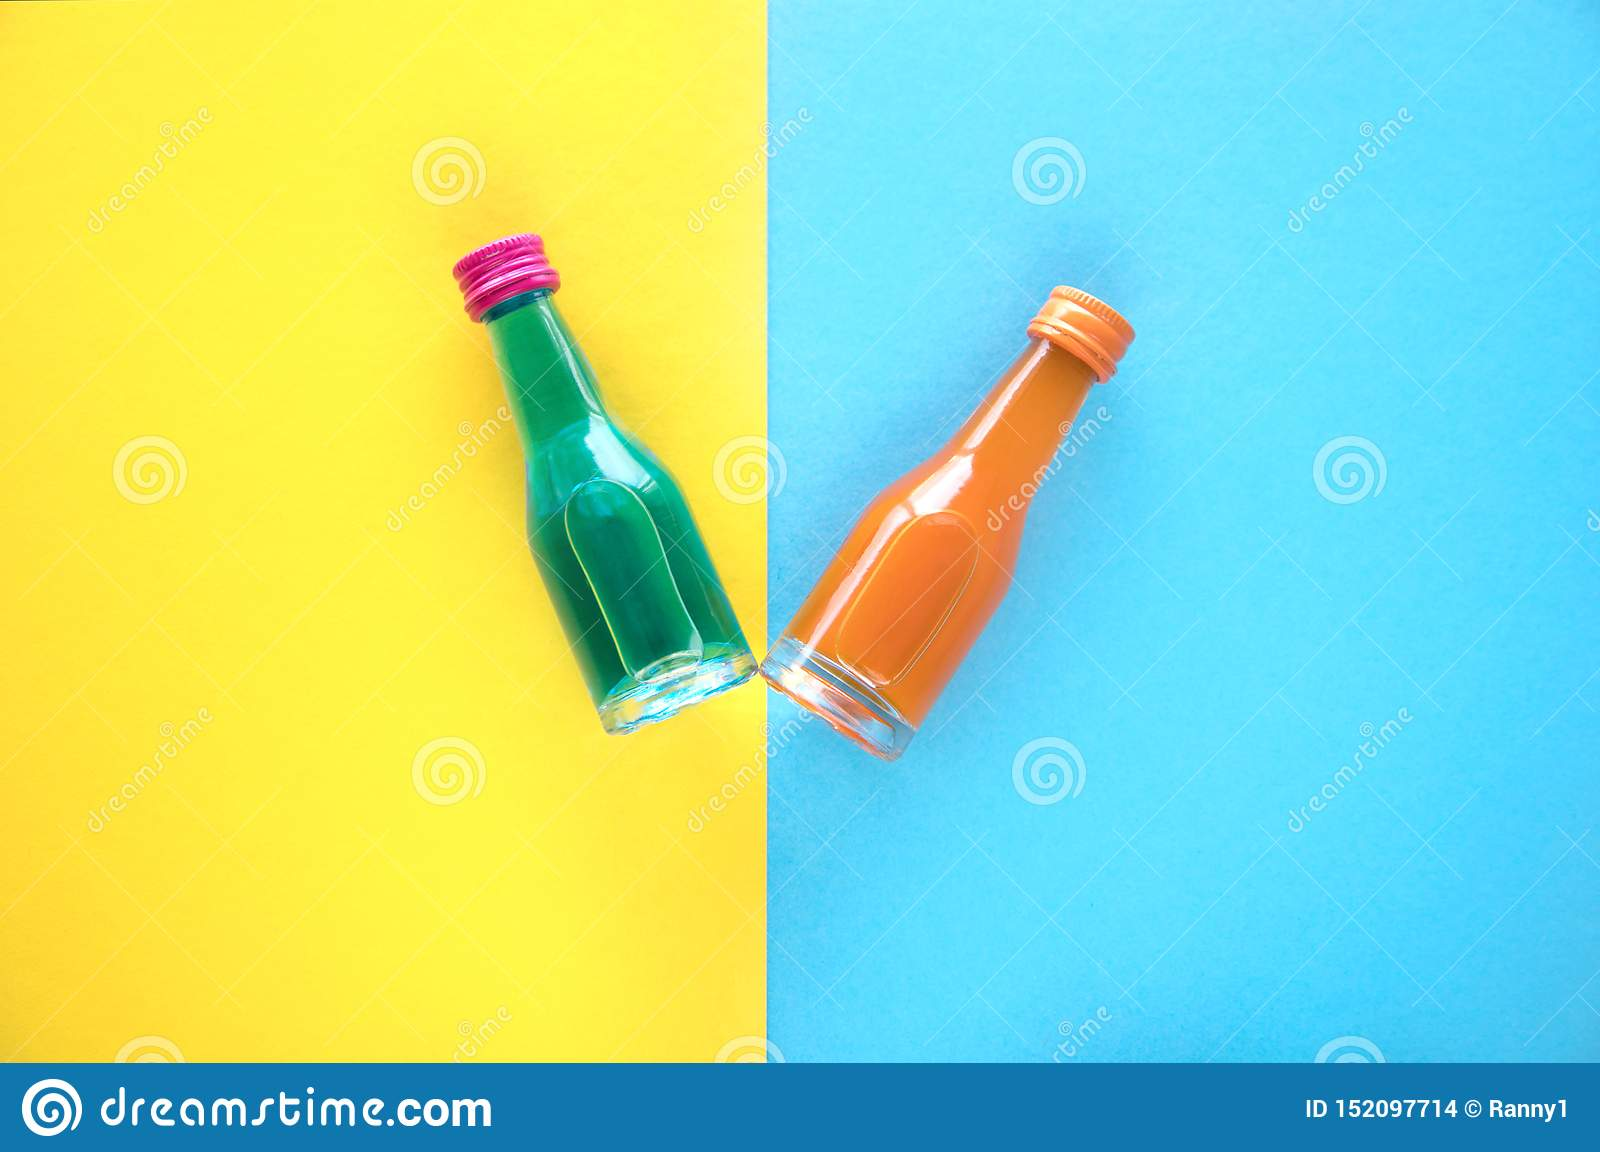 Two small glass bottles with a blue and orange cocktail on a blue and yellow background. Two multi-colored small bottles with